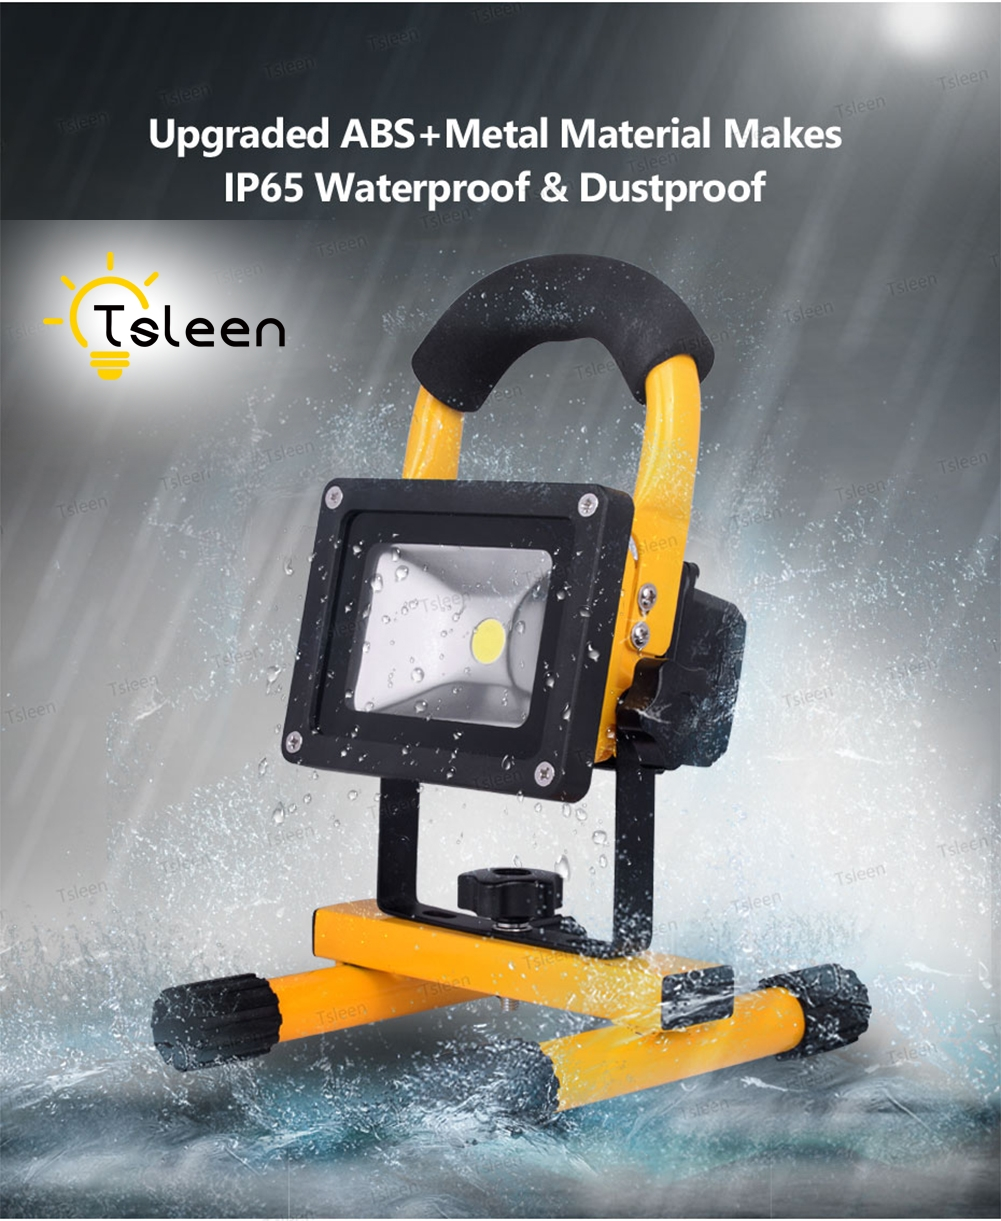 TSLEEN 1PC LED Spotlight 20W Floodlight IP65 Waterproof LED Flood Light AC 220V Refletor LED Outdoor Lighting Gargen Lamp